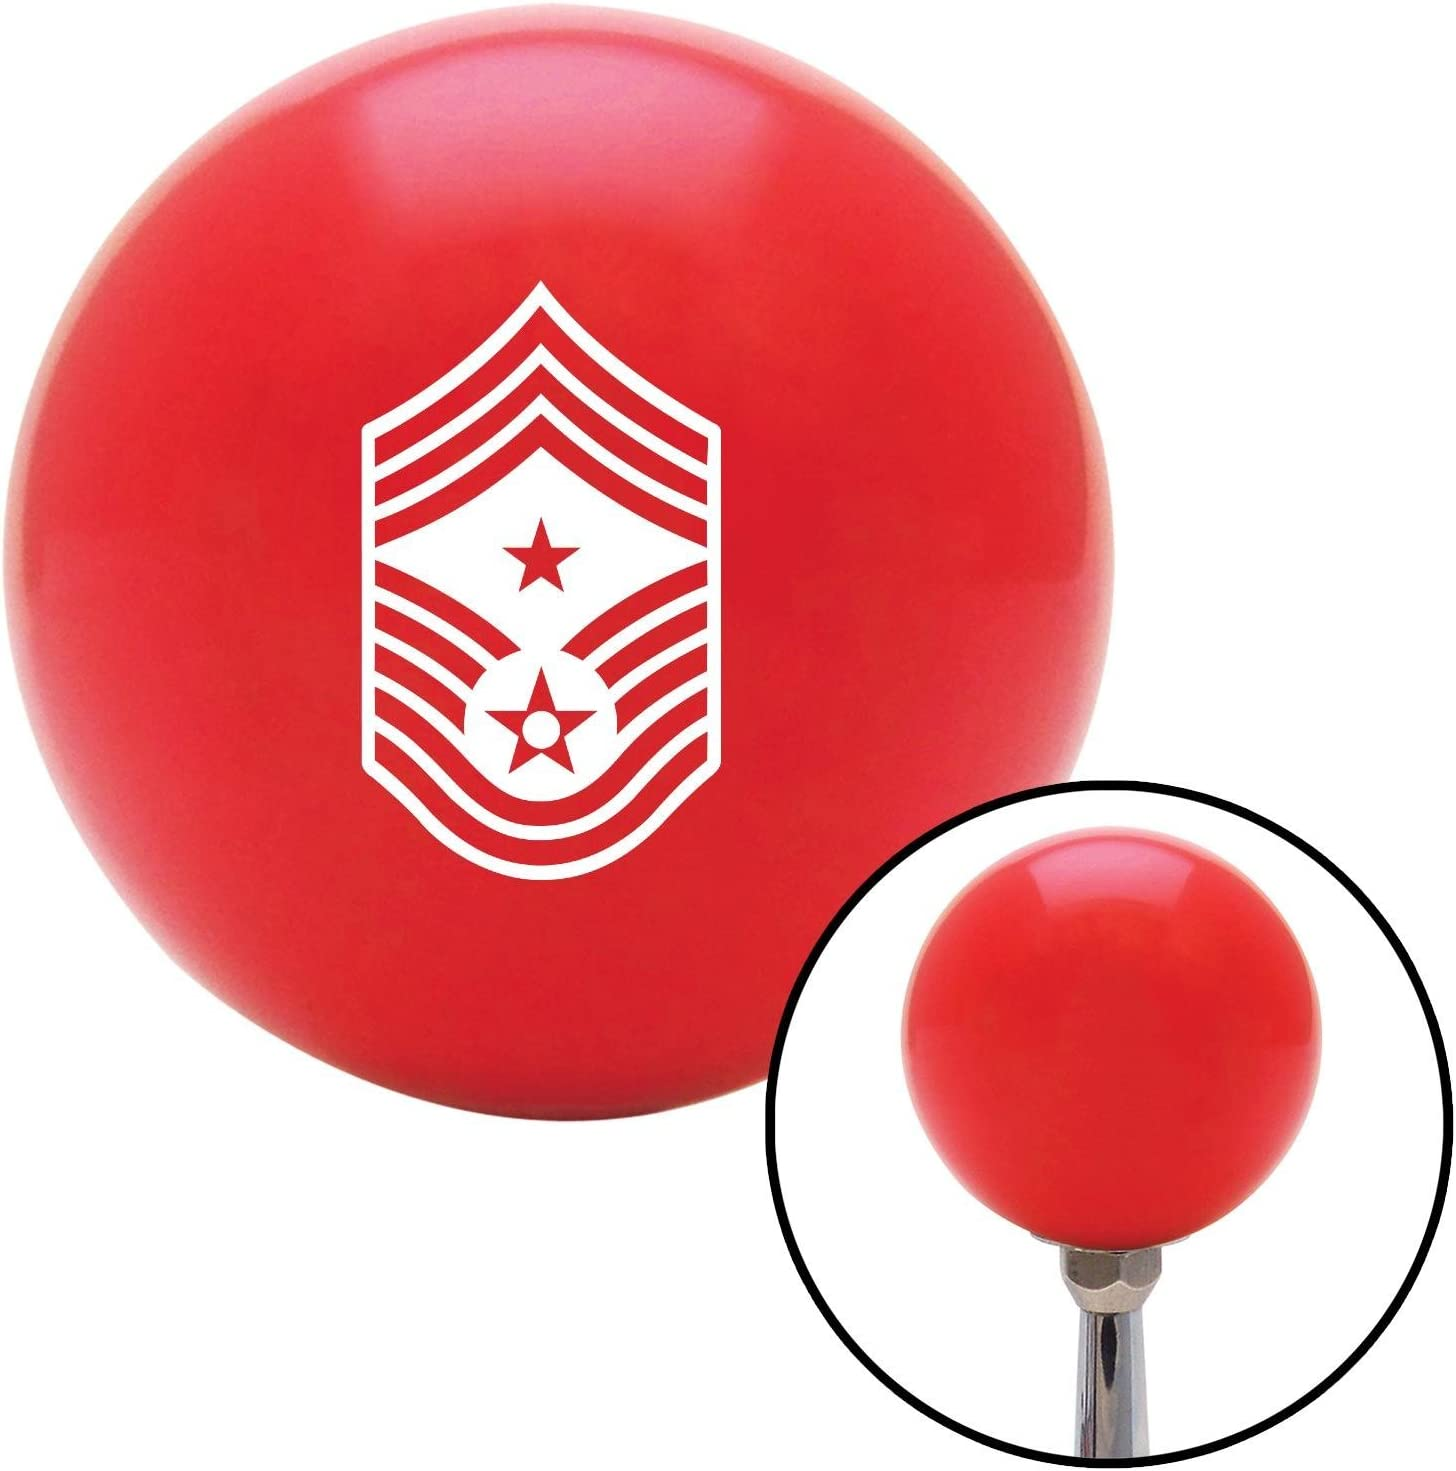 American Shifter 97616 Red Shift Knob with M16 x 1.5 Insert White Command Chief Master Sergeant